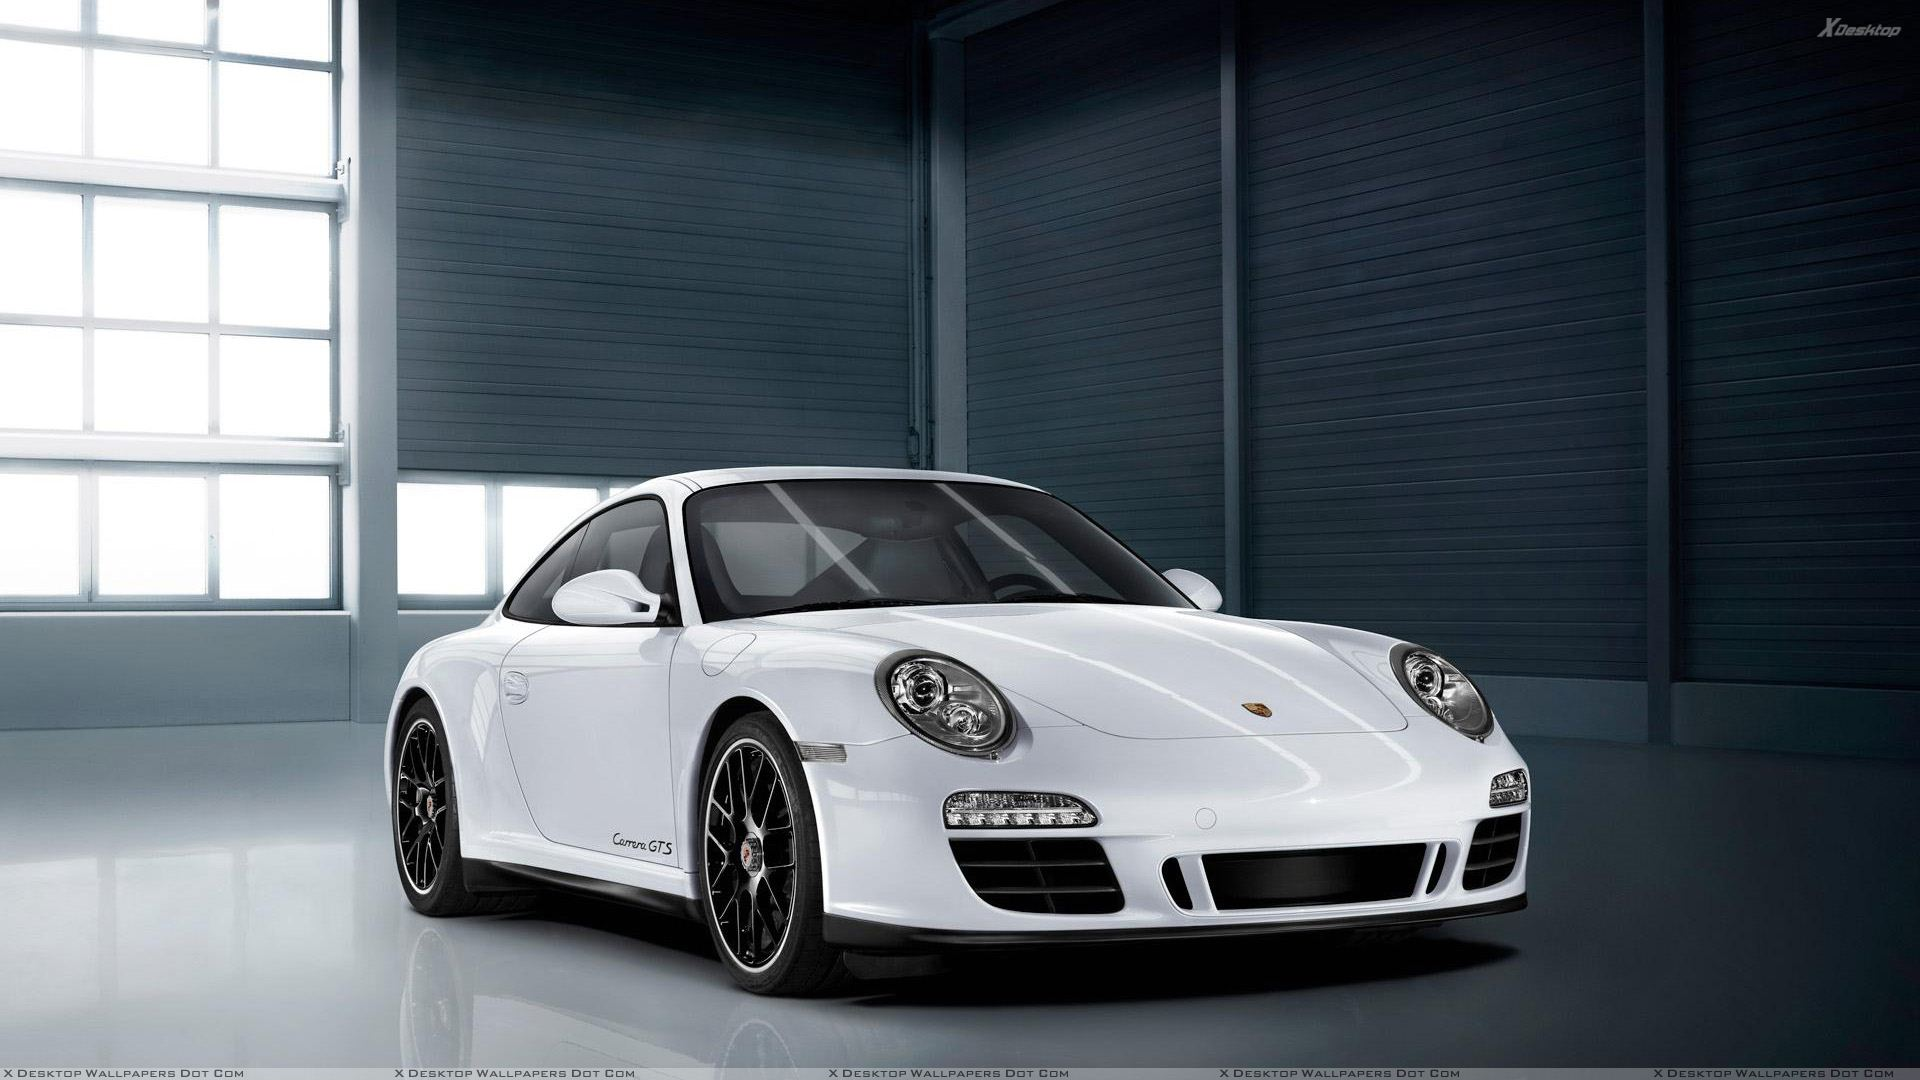 Cars Wallpapers Photos Images In Hd